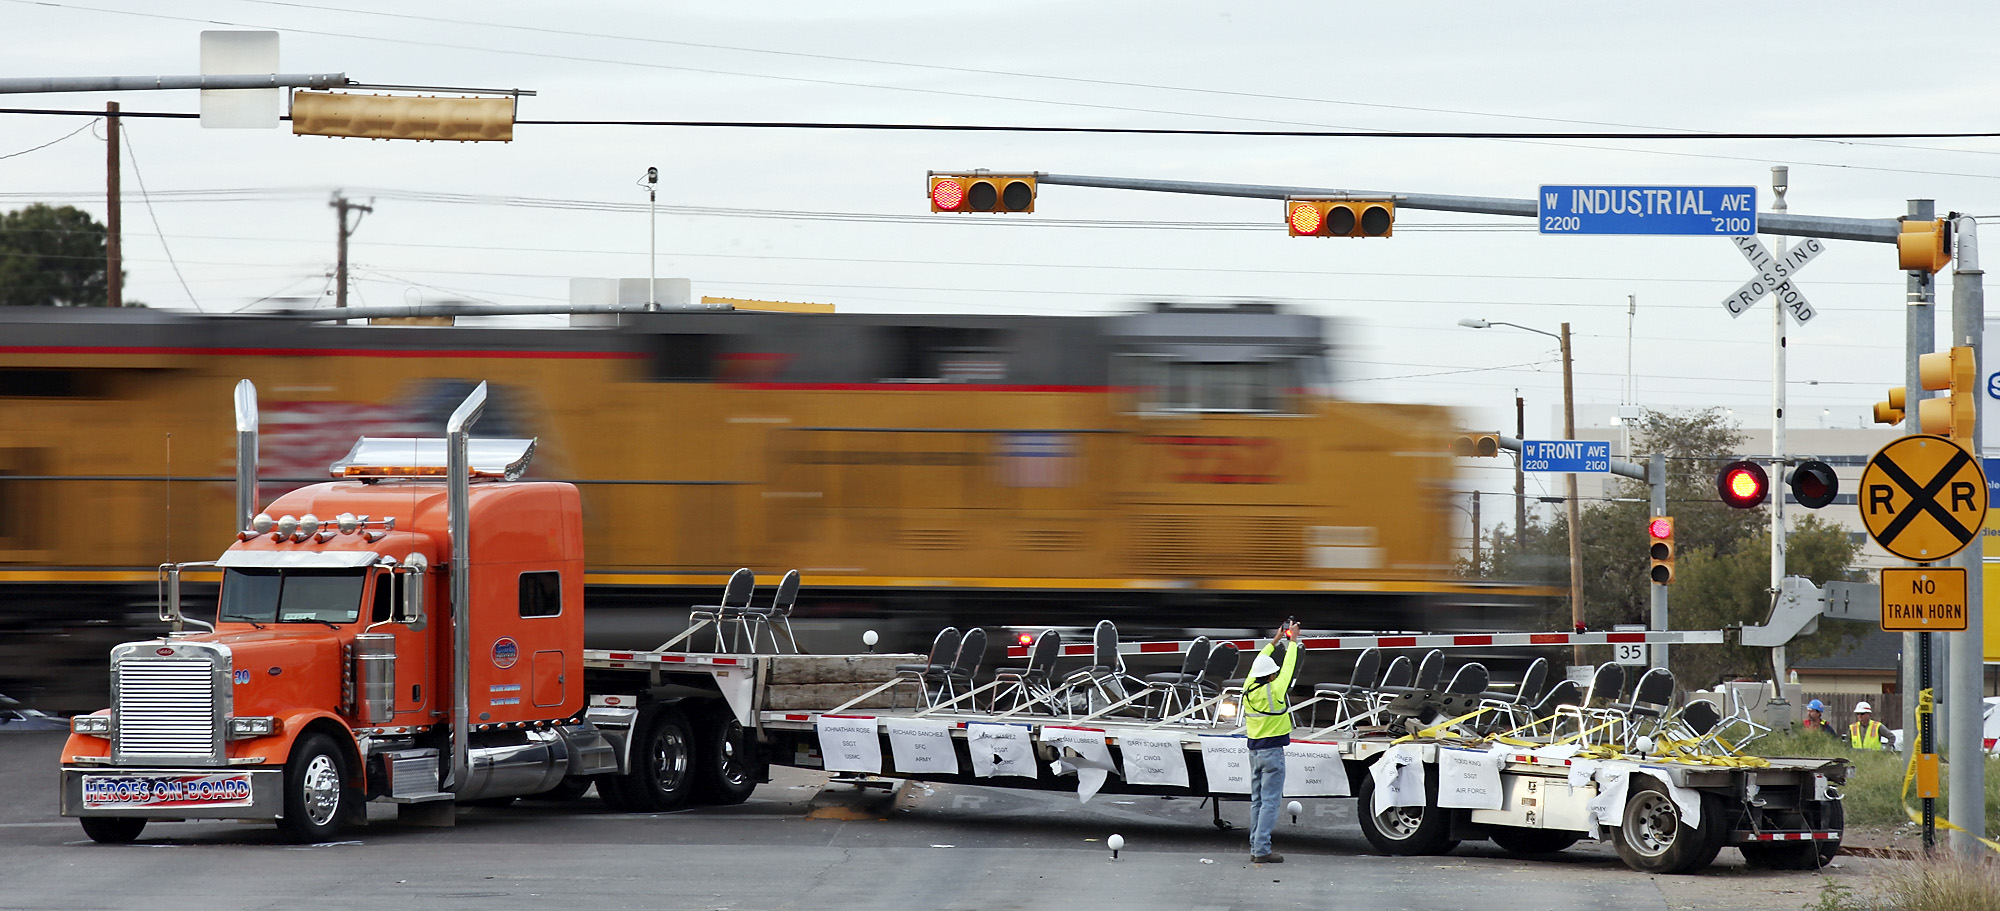 Grand Jury To Hear Midland Train Crash Case San Antonio Express News